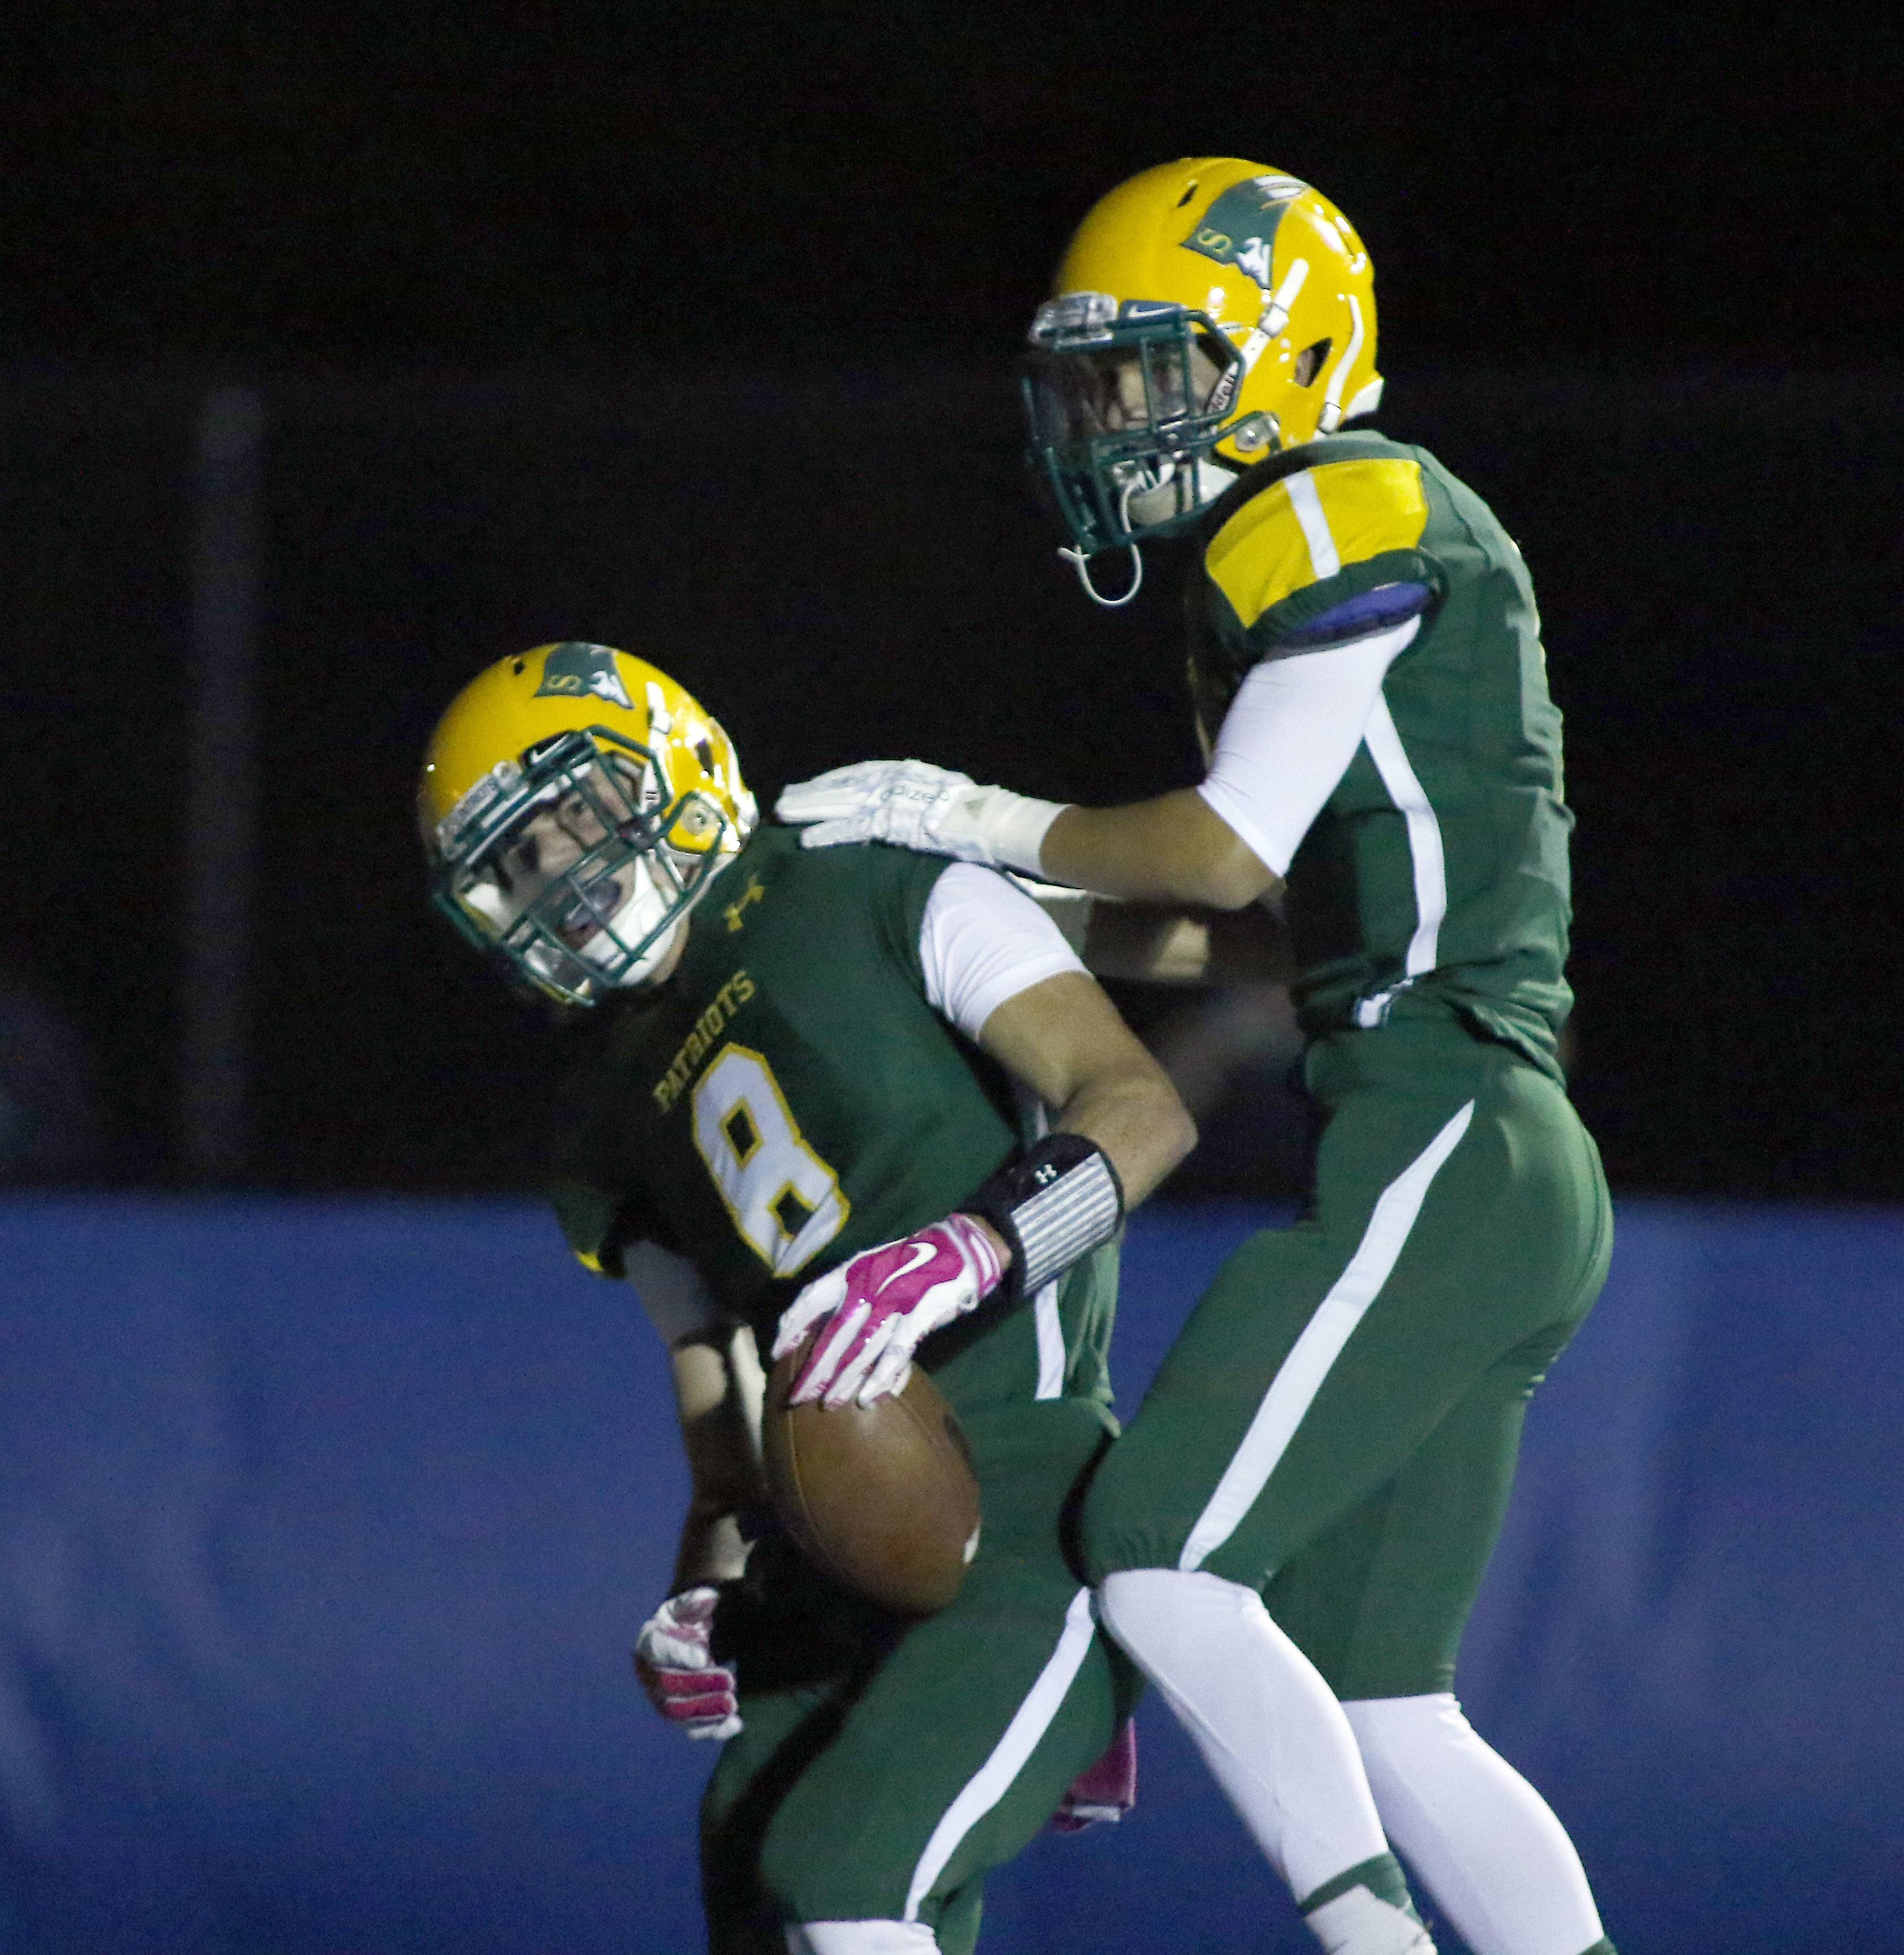 Stevenson's Michael Marchese ( 8) and Noah Lukz (1) celebrate after a Patriots touchdown Friday at Lake Zurich.